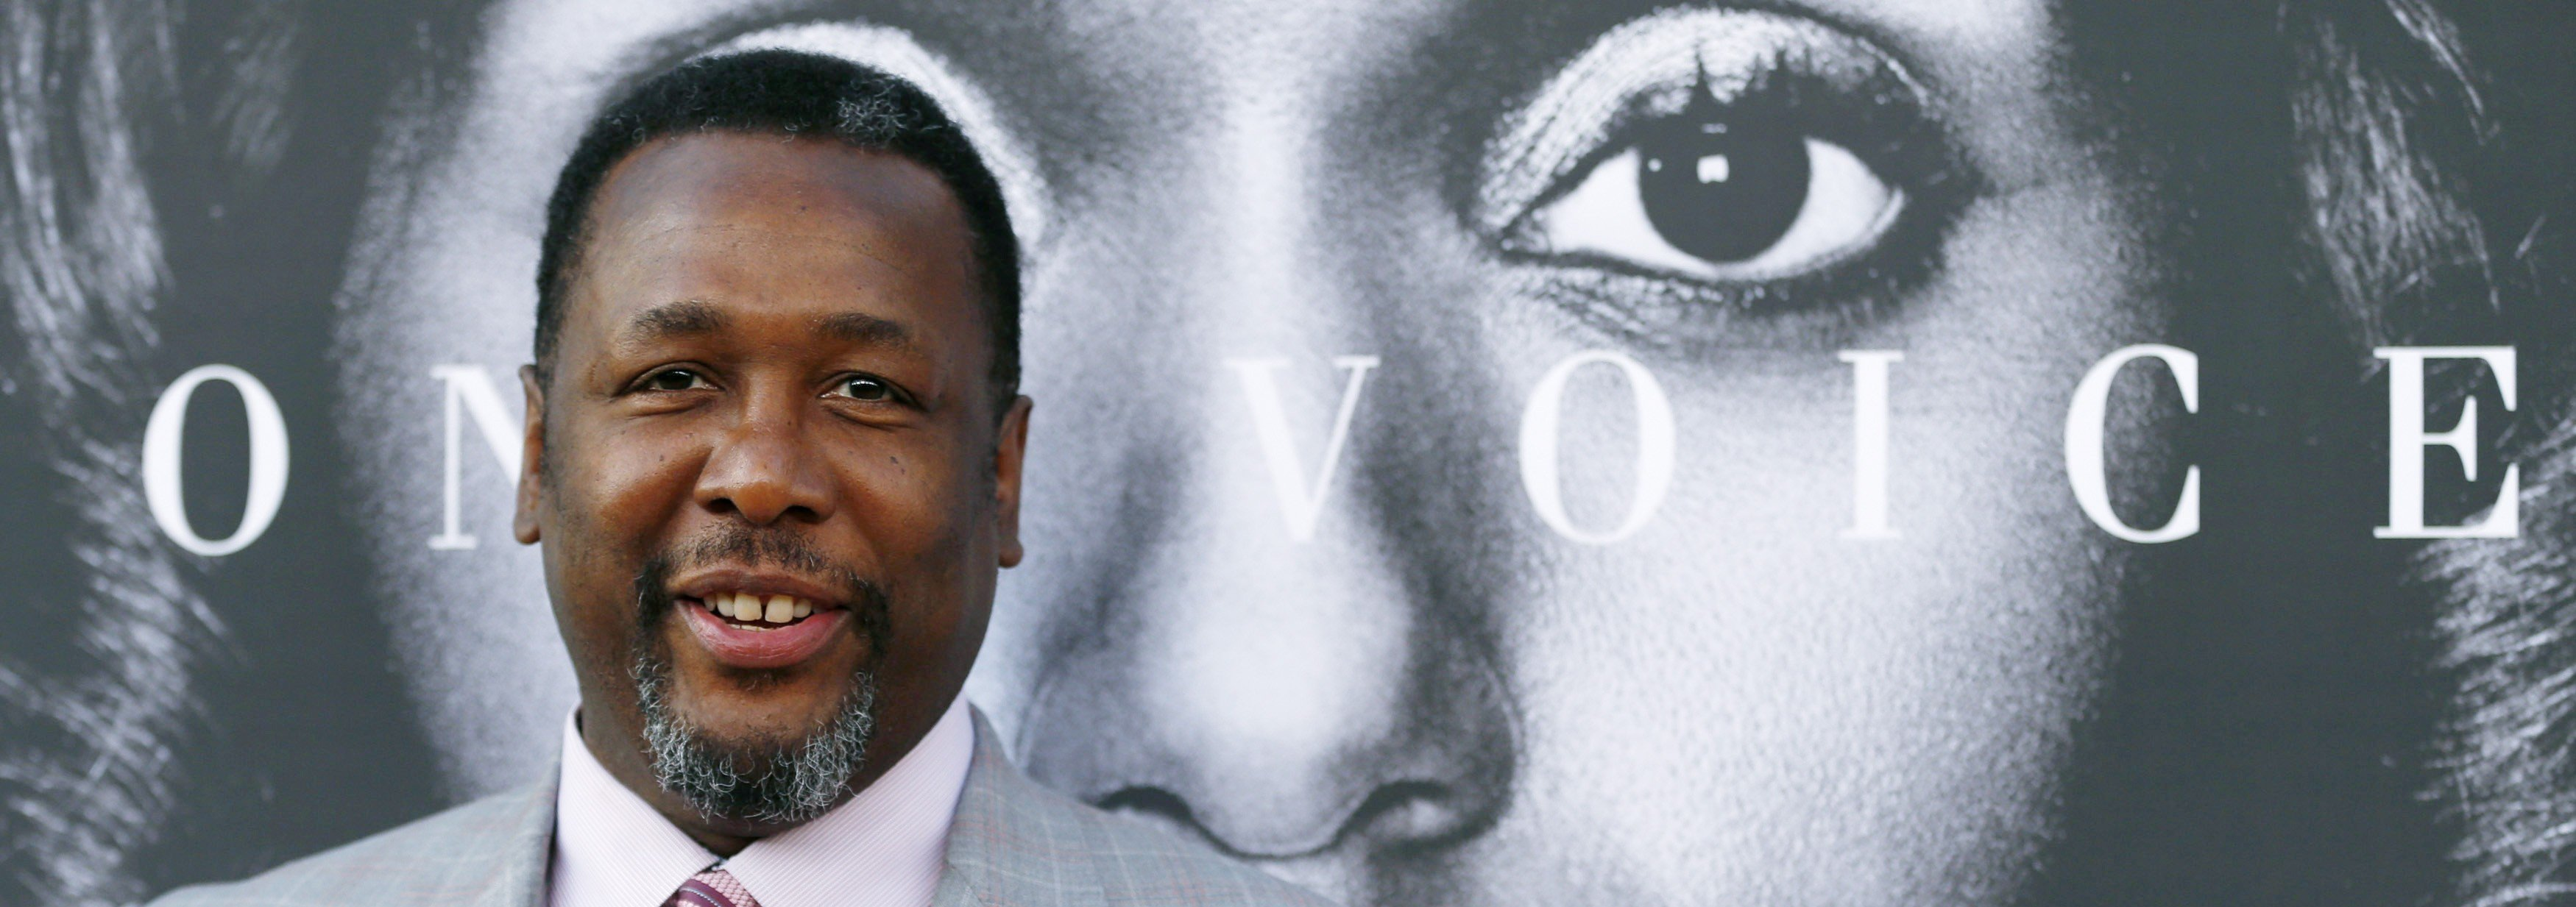 """Cast member Wendell Pierce poses at the premiere for the television movie """"Confirmation"""" in Los Angeles, California March 31, 2016. photo:REUTERS/Mario Anzuoni)/File Photo - RTSEK9M"""